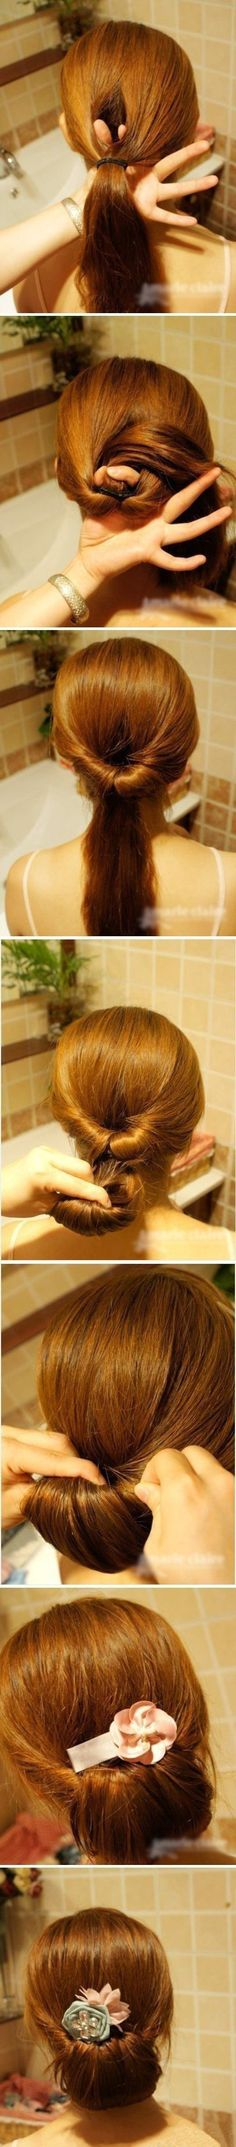 20 Clever And Amazing Tutorials Hair Tutorials